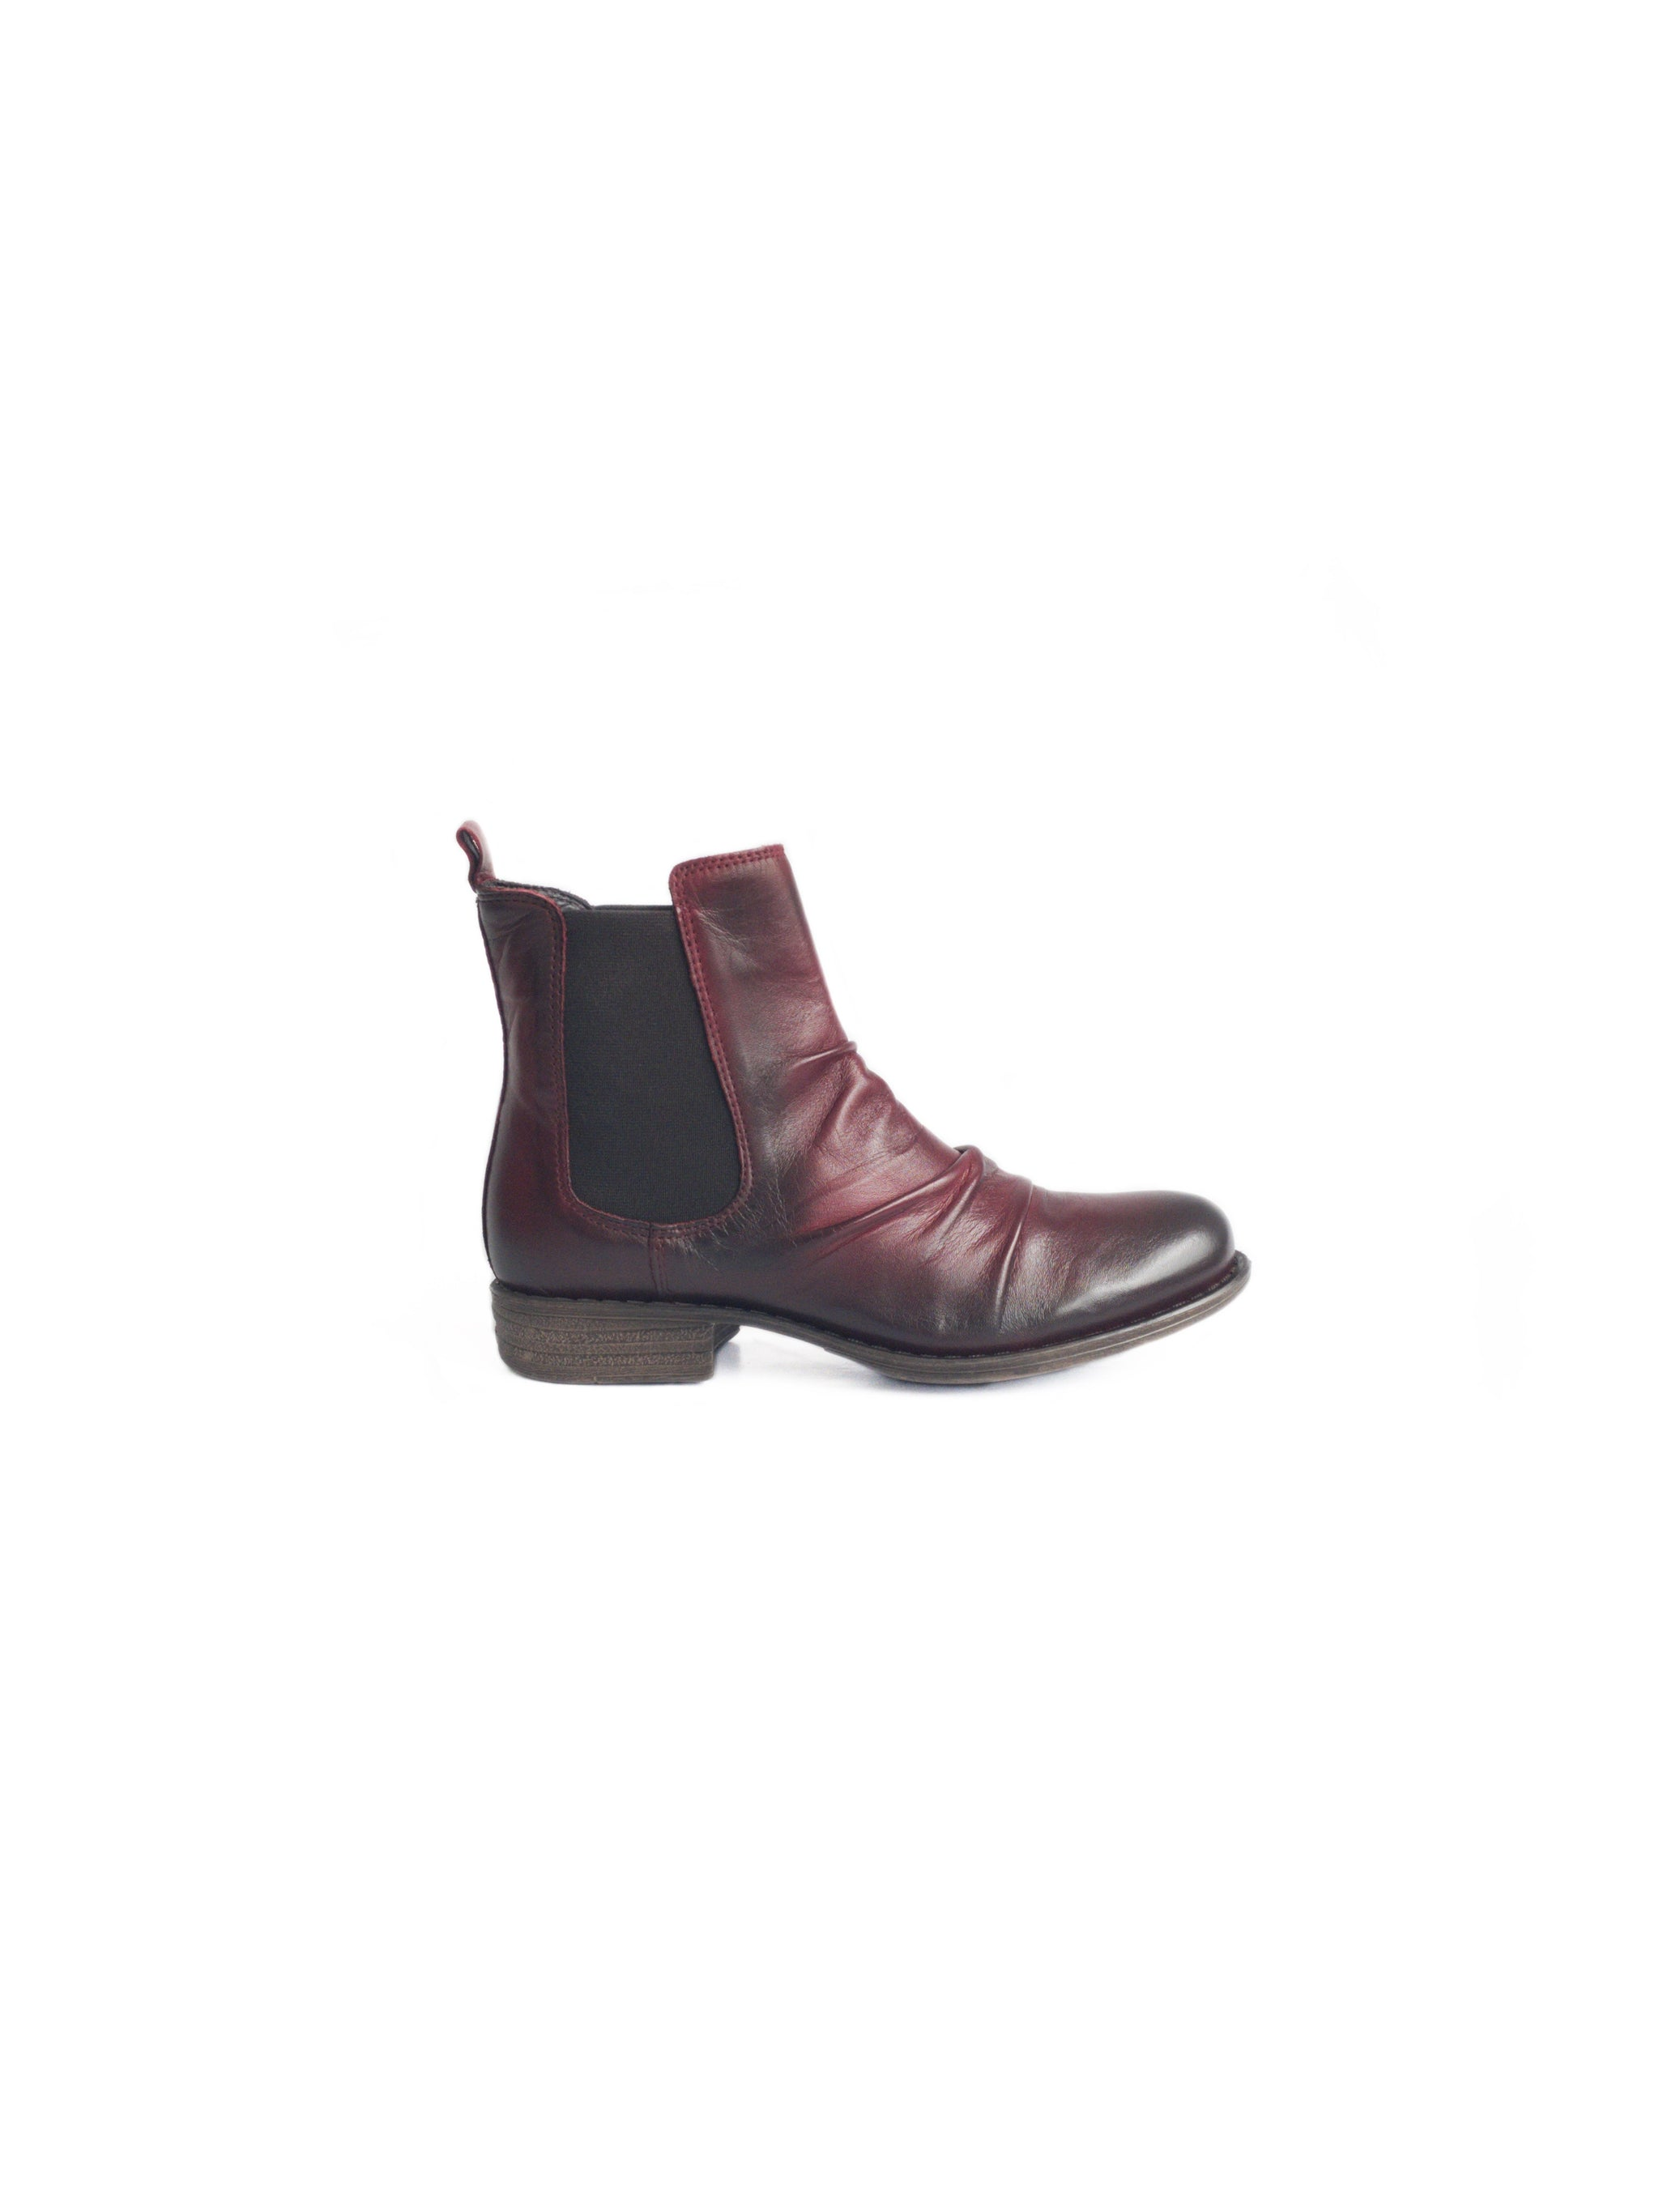 MIZ MOOZ - LISSIE IN BORDEAUX ANTIQUE